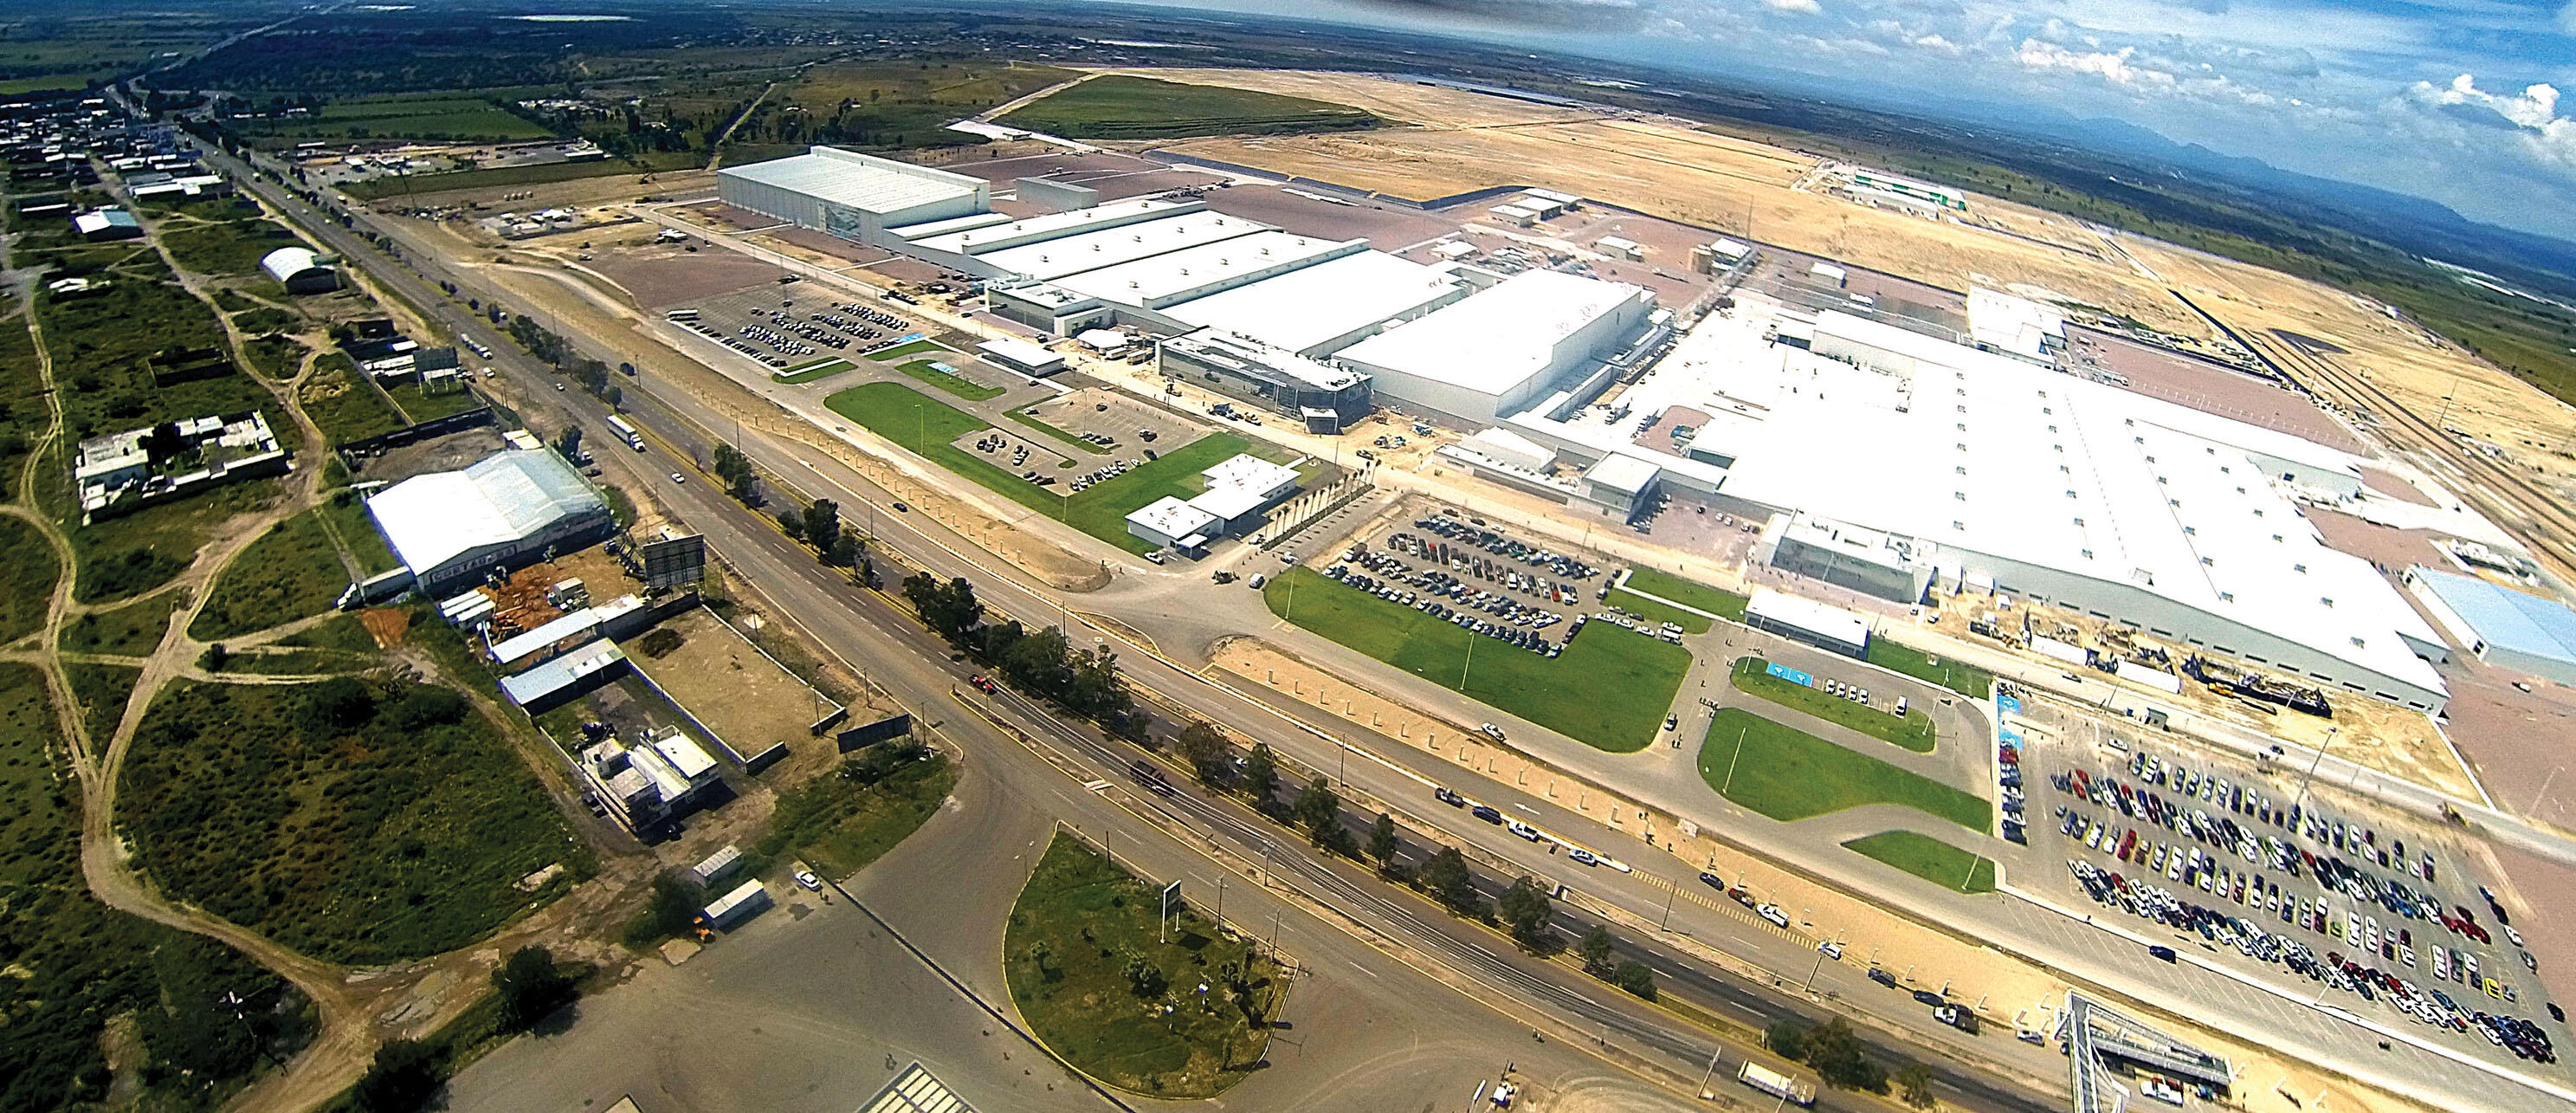 An aerial photograph of a sprawling Nissan facility in Aguascalientes, which will be joined by a Daimler-Benz plant in the open space behind it. (Photo courtesy of and © Nissan Motor Corporation.)